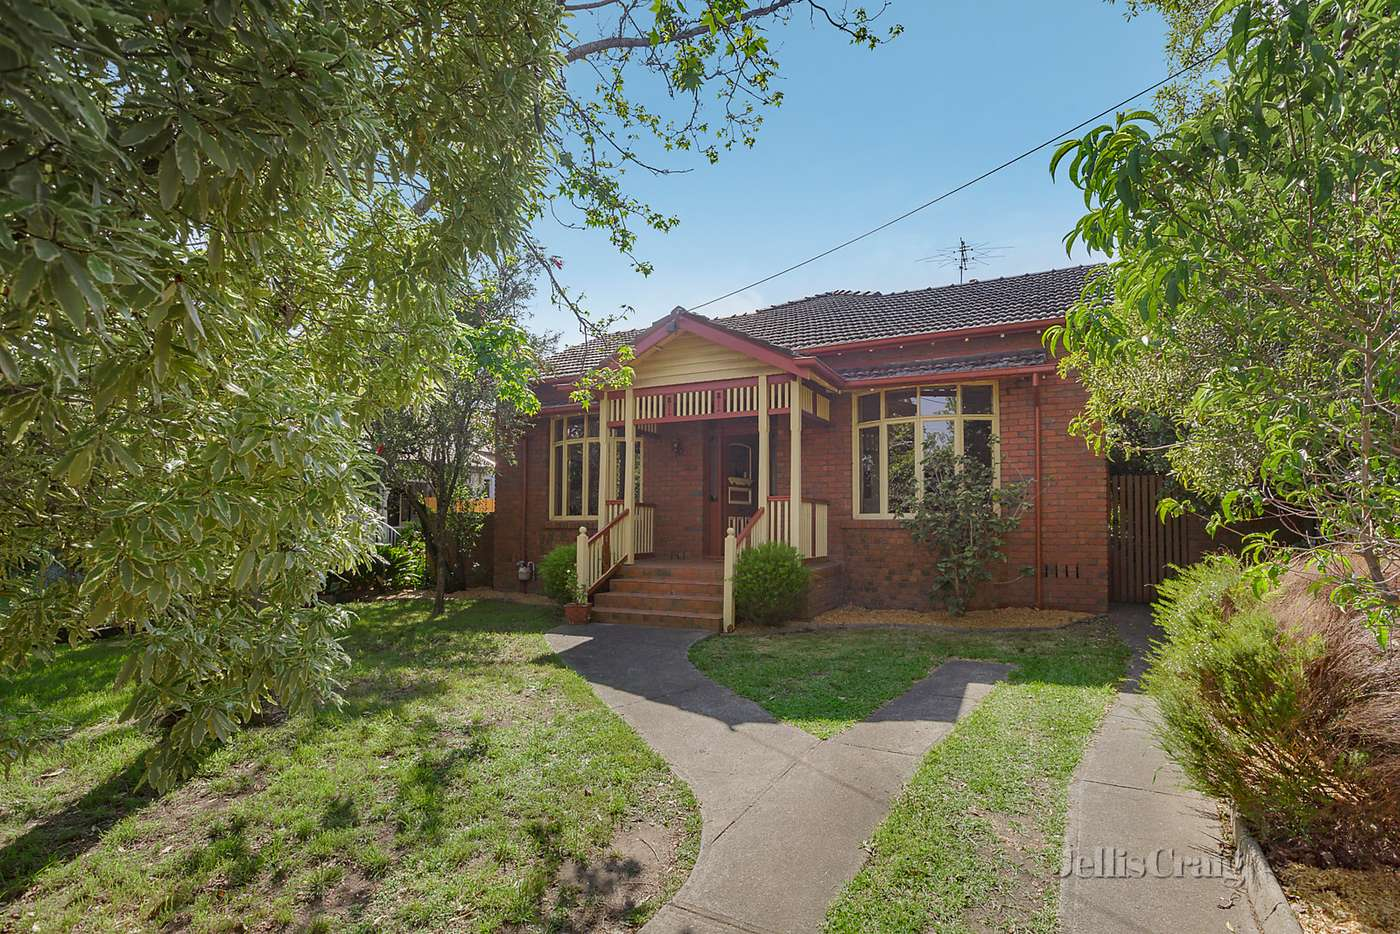 Main view of Homely house listing, 203 Waterdale Road, Ivanhoe VIC 3079